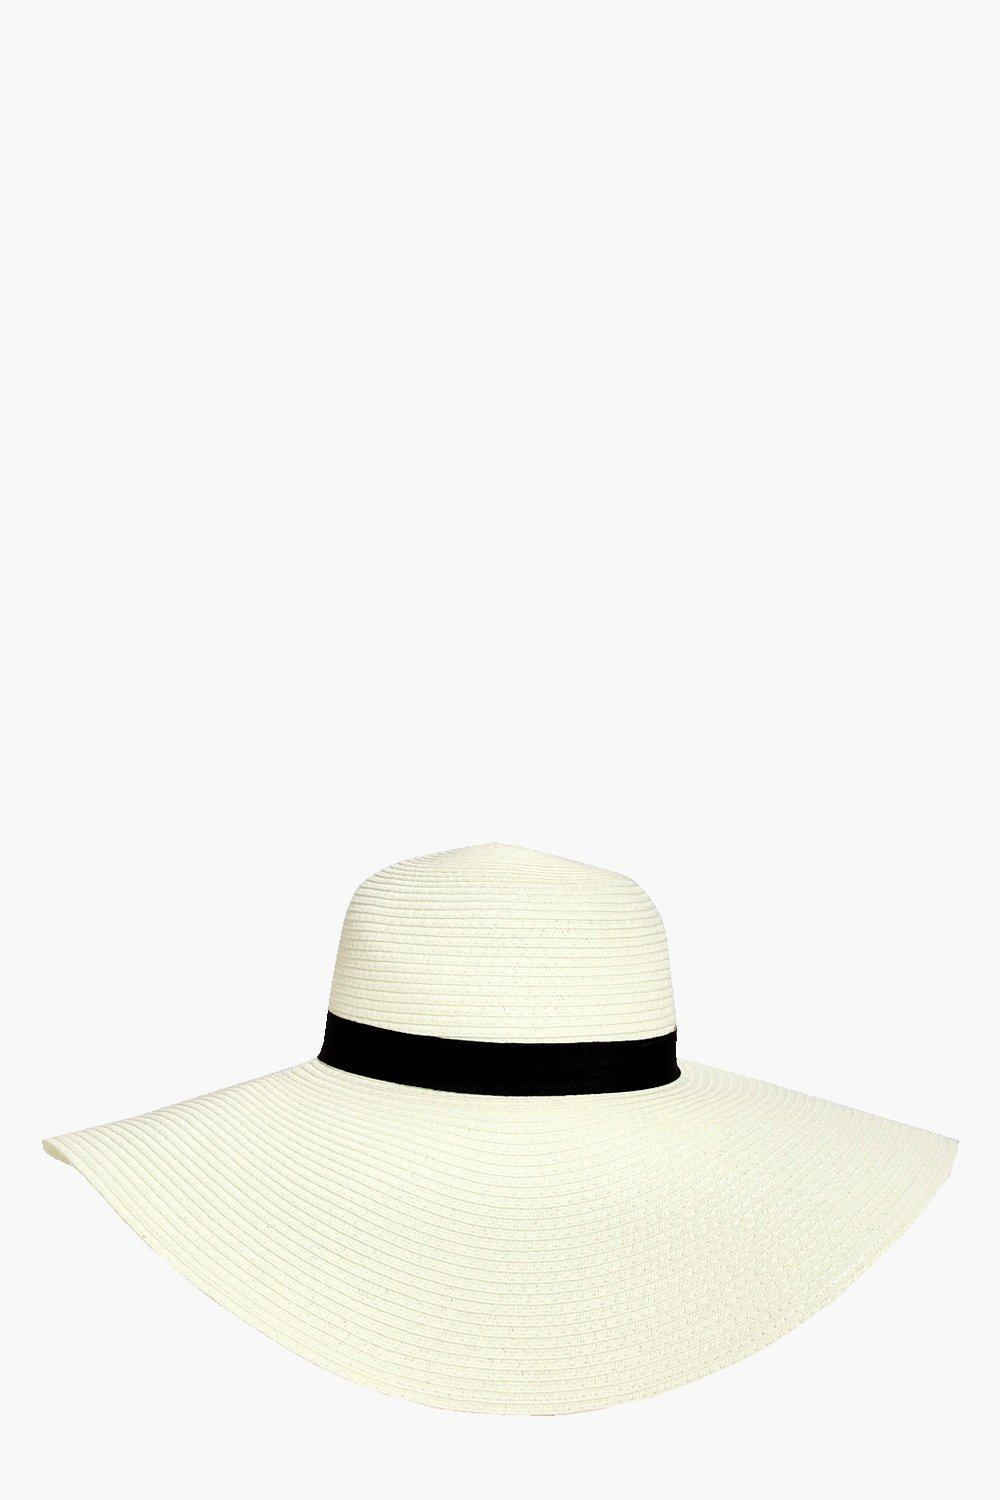 Straw Floppy Hat - white - Alice Straw Floppy Hat